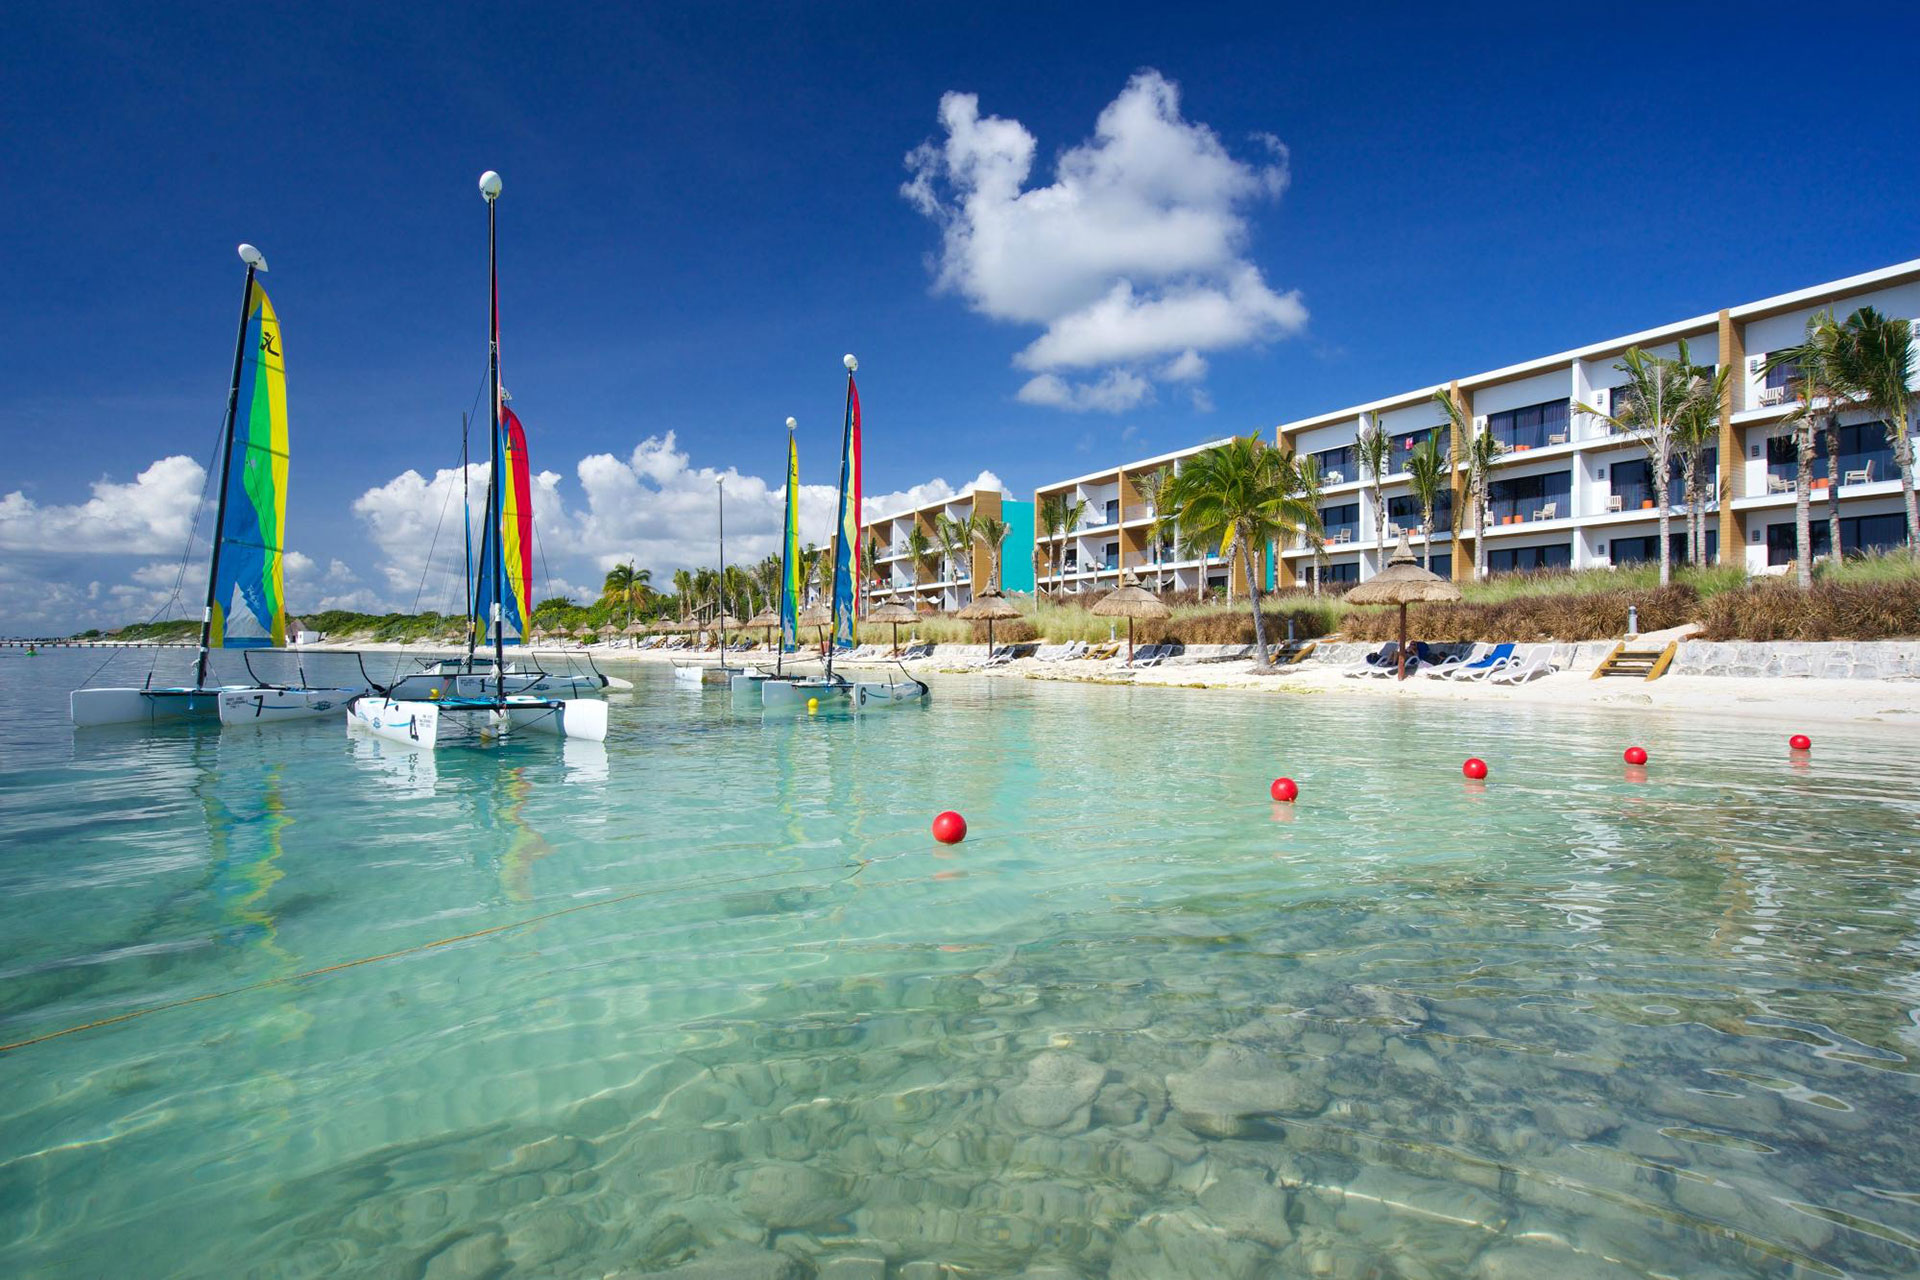 Club Med Cancun Yucatan; Courtesy of Club Med Cancun Yucatan